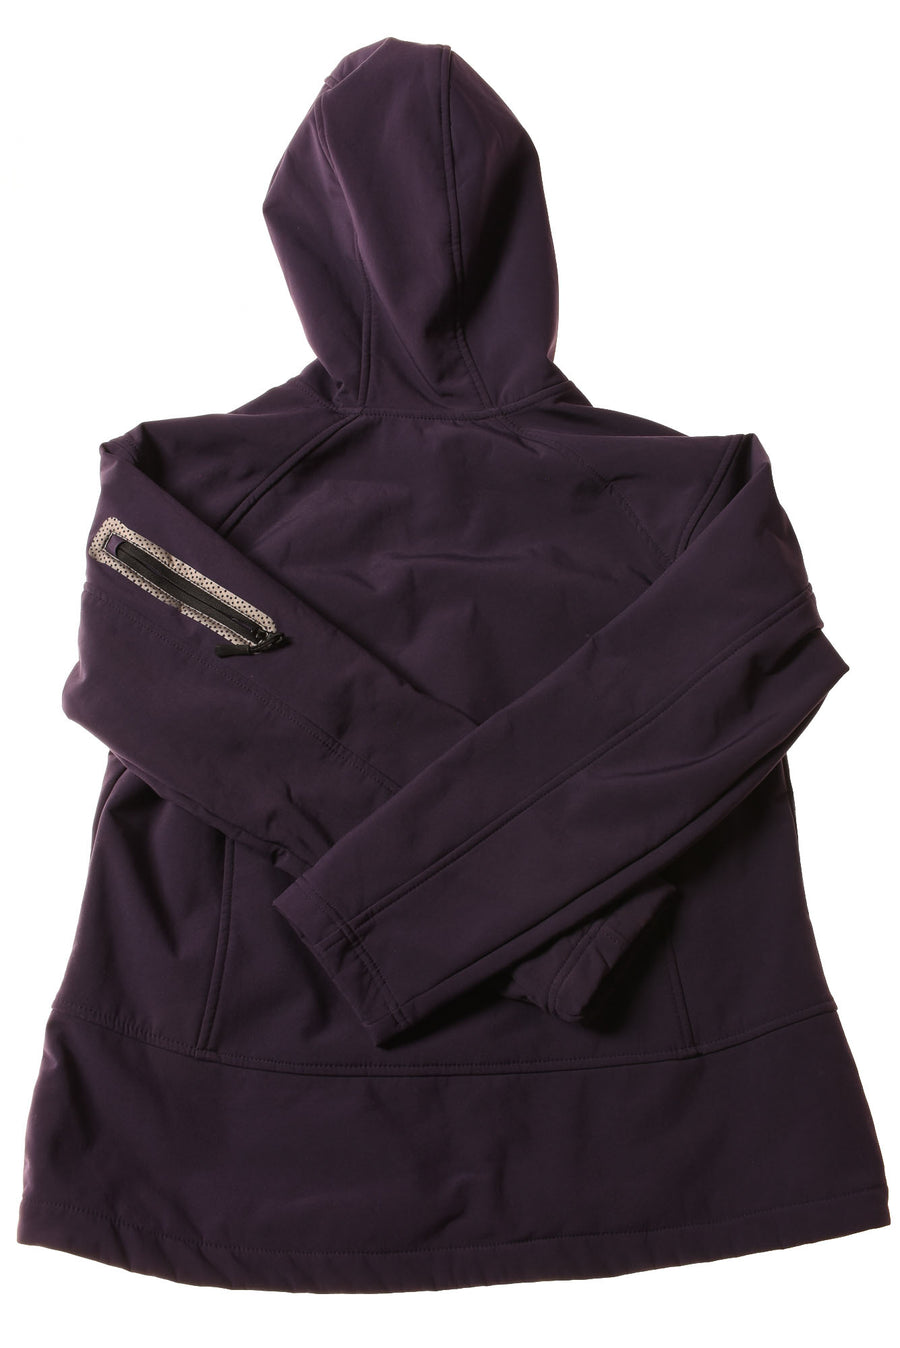 USED Avia Women's Coat Large Purple